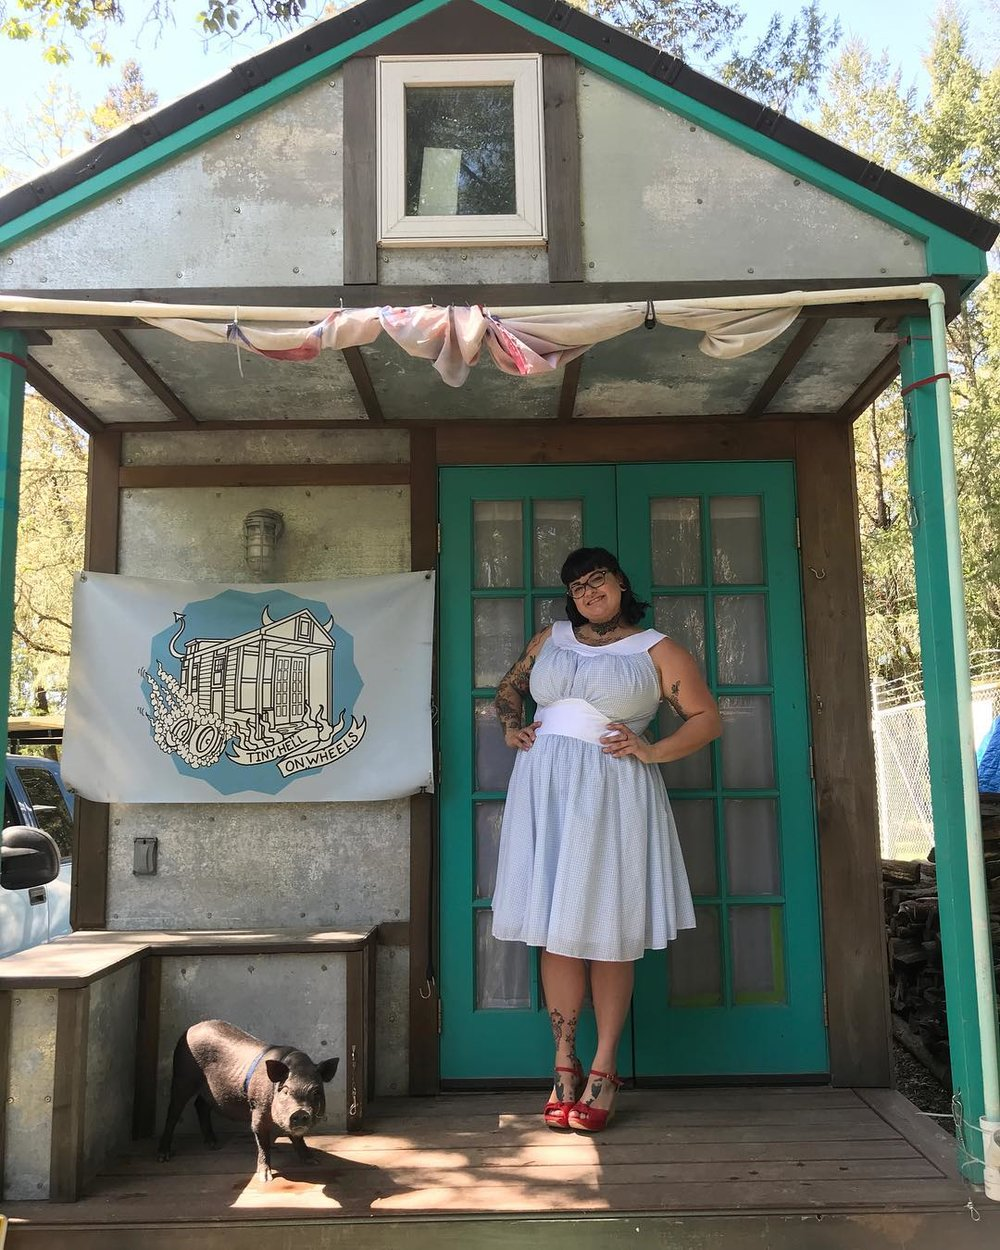 Hilarie Tamar & Crusher the Mini Pig - She built her house in 3 years and traveled 15,000 miles across the USA & Canada. Tiny Hell on Wheels is Hilarie's self built tiny house. She started her build in September of 2014. It took her almost three years of on and off building, of saving money, of healing from illnesses, of losing family members and of immense self growth to finally move into her tiny dream house. Her dream was to move out of her mom's house but she didn't want to throw money in the toilet by renting an overpriced and unkempt NJ apartment. Instead, her mom, Kandi, let her daughter build in the backyard. Three years later she hit the road, traveling over 15,000 miles in the first year and meeting people that would change her life forever. She is currently parked in a small North Bay Area town in California.